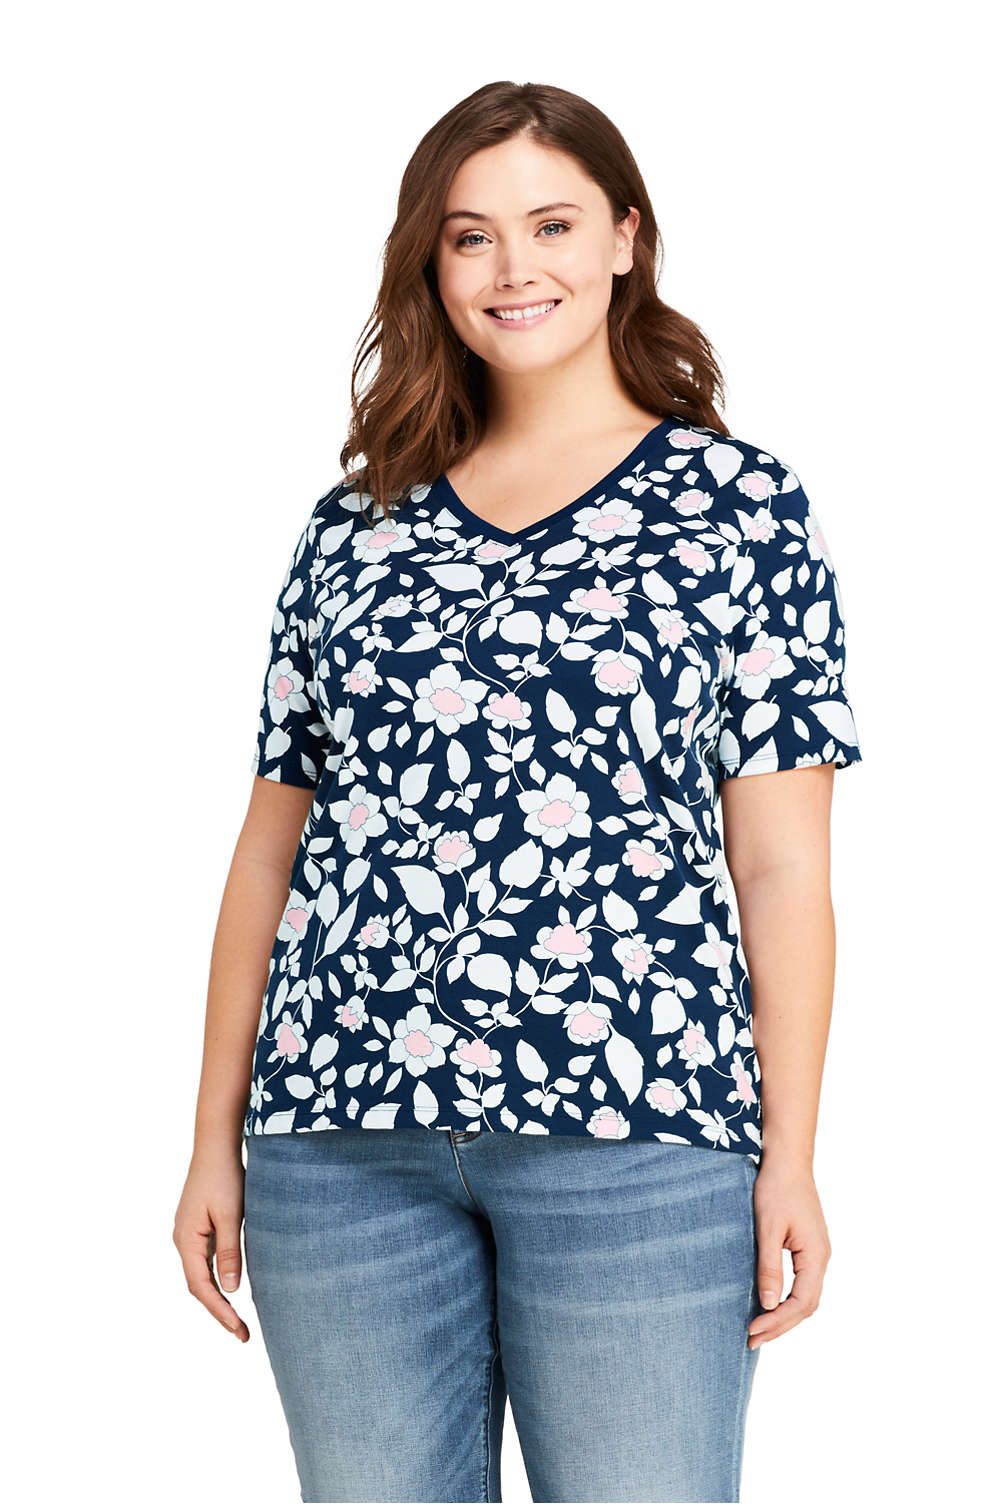 bced88458733 Women's Plus Size Relaxed Fit Supima Cotton V-neck Short Sleeve T-shirt  Print from Lands' End